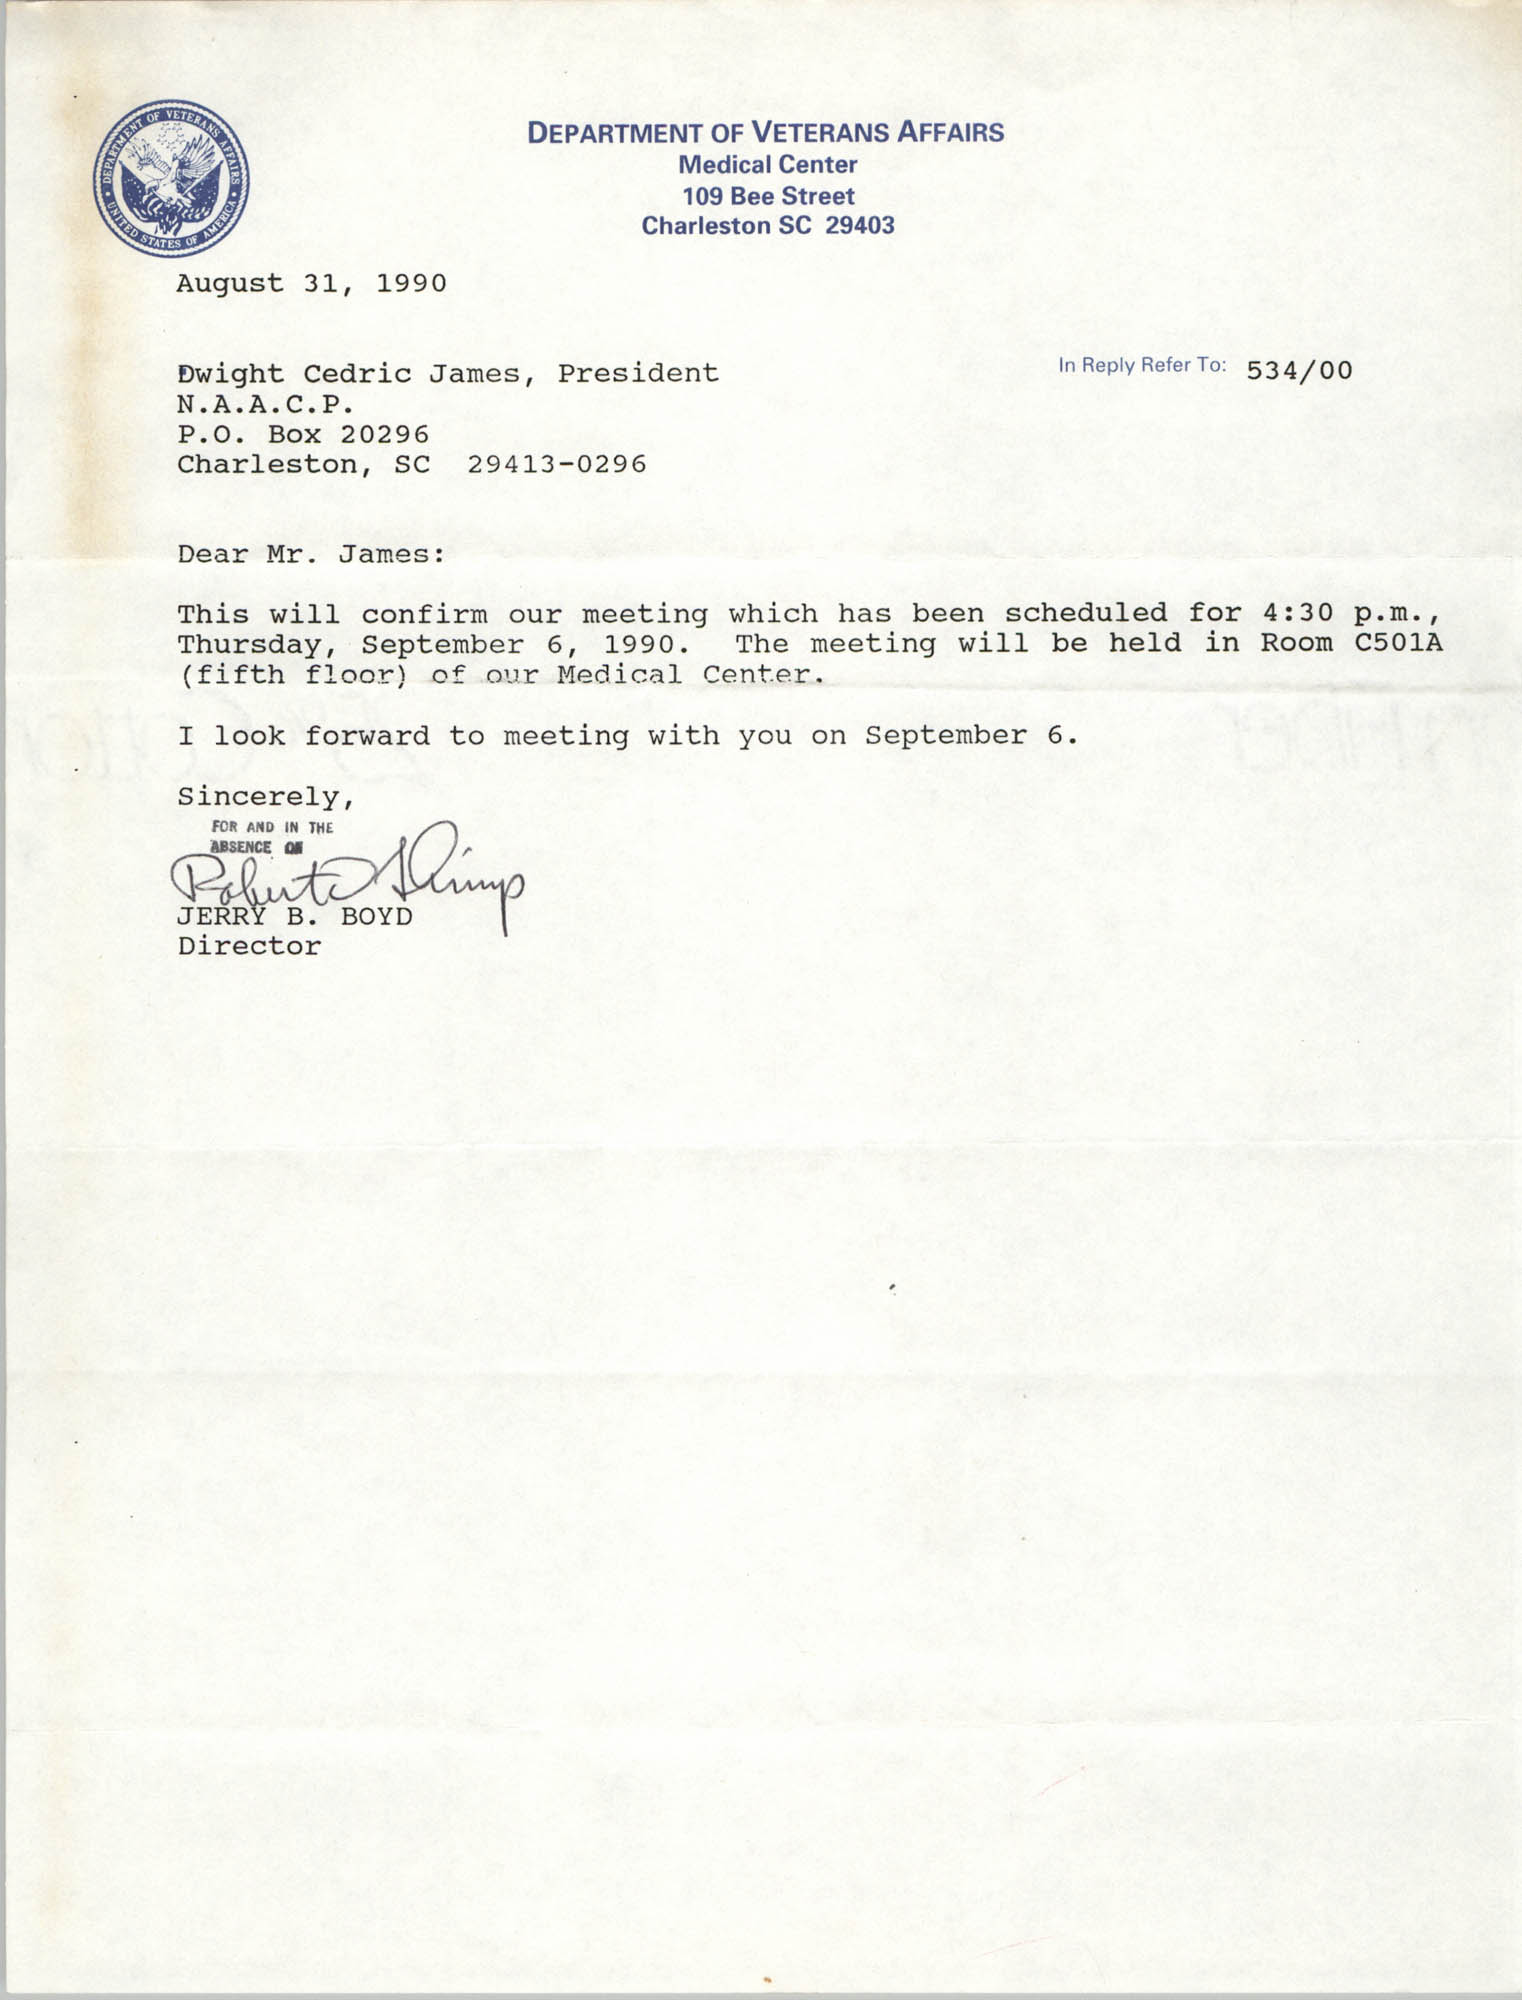 Letter from Jerry B. Boyd to Dwight C. James, August 31, 1990